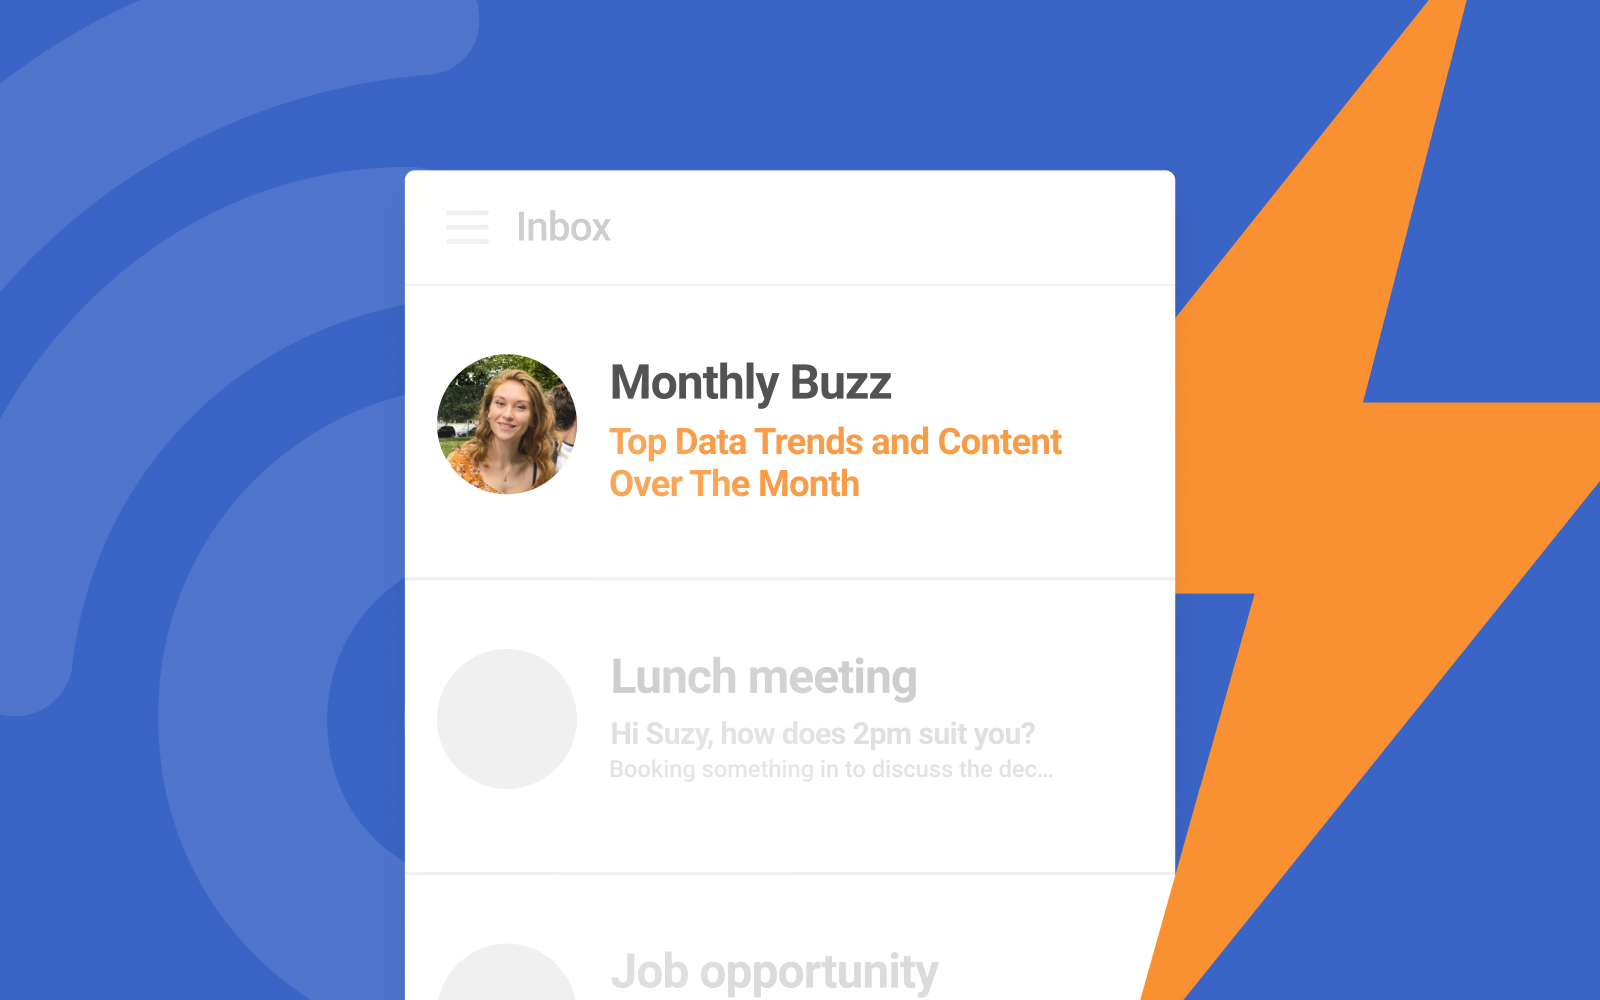 The Monthly Buzz